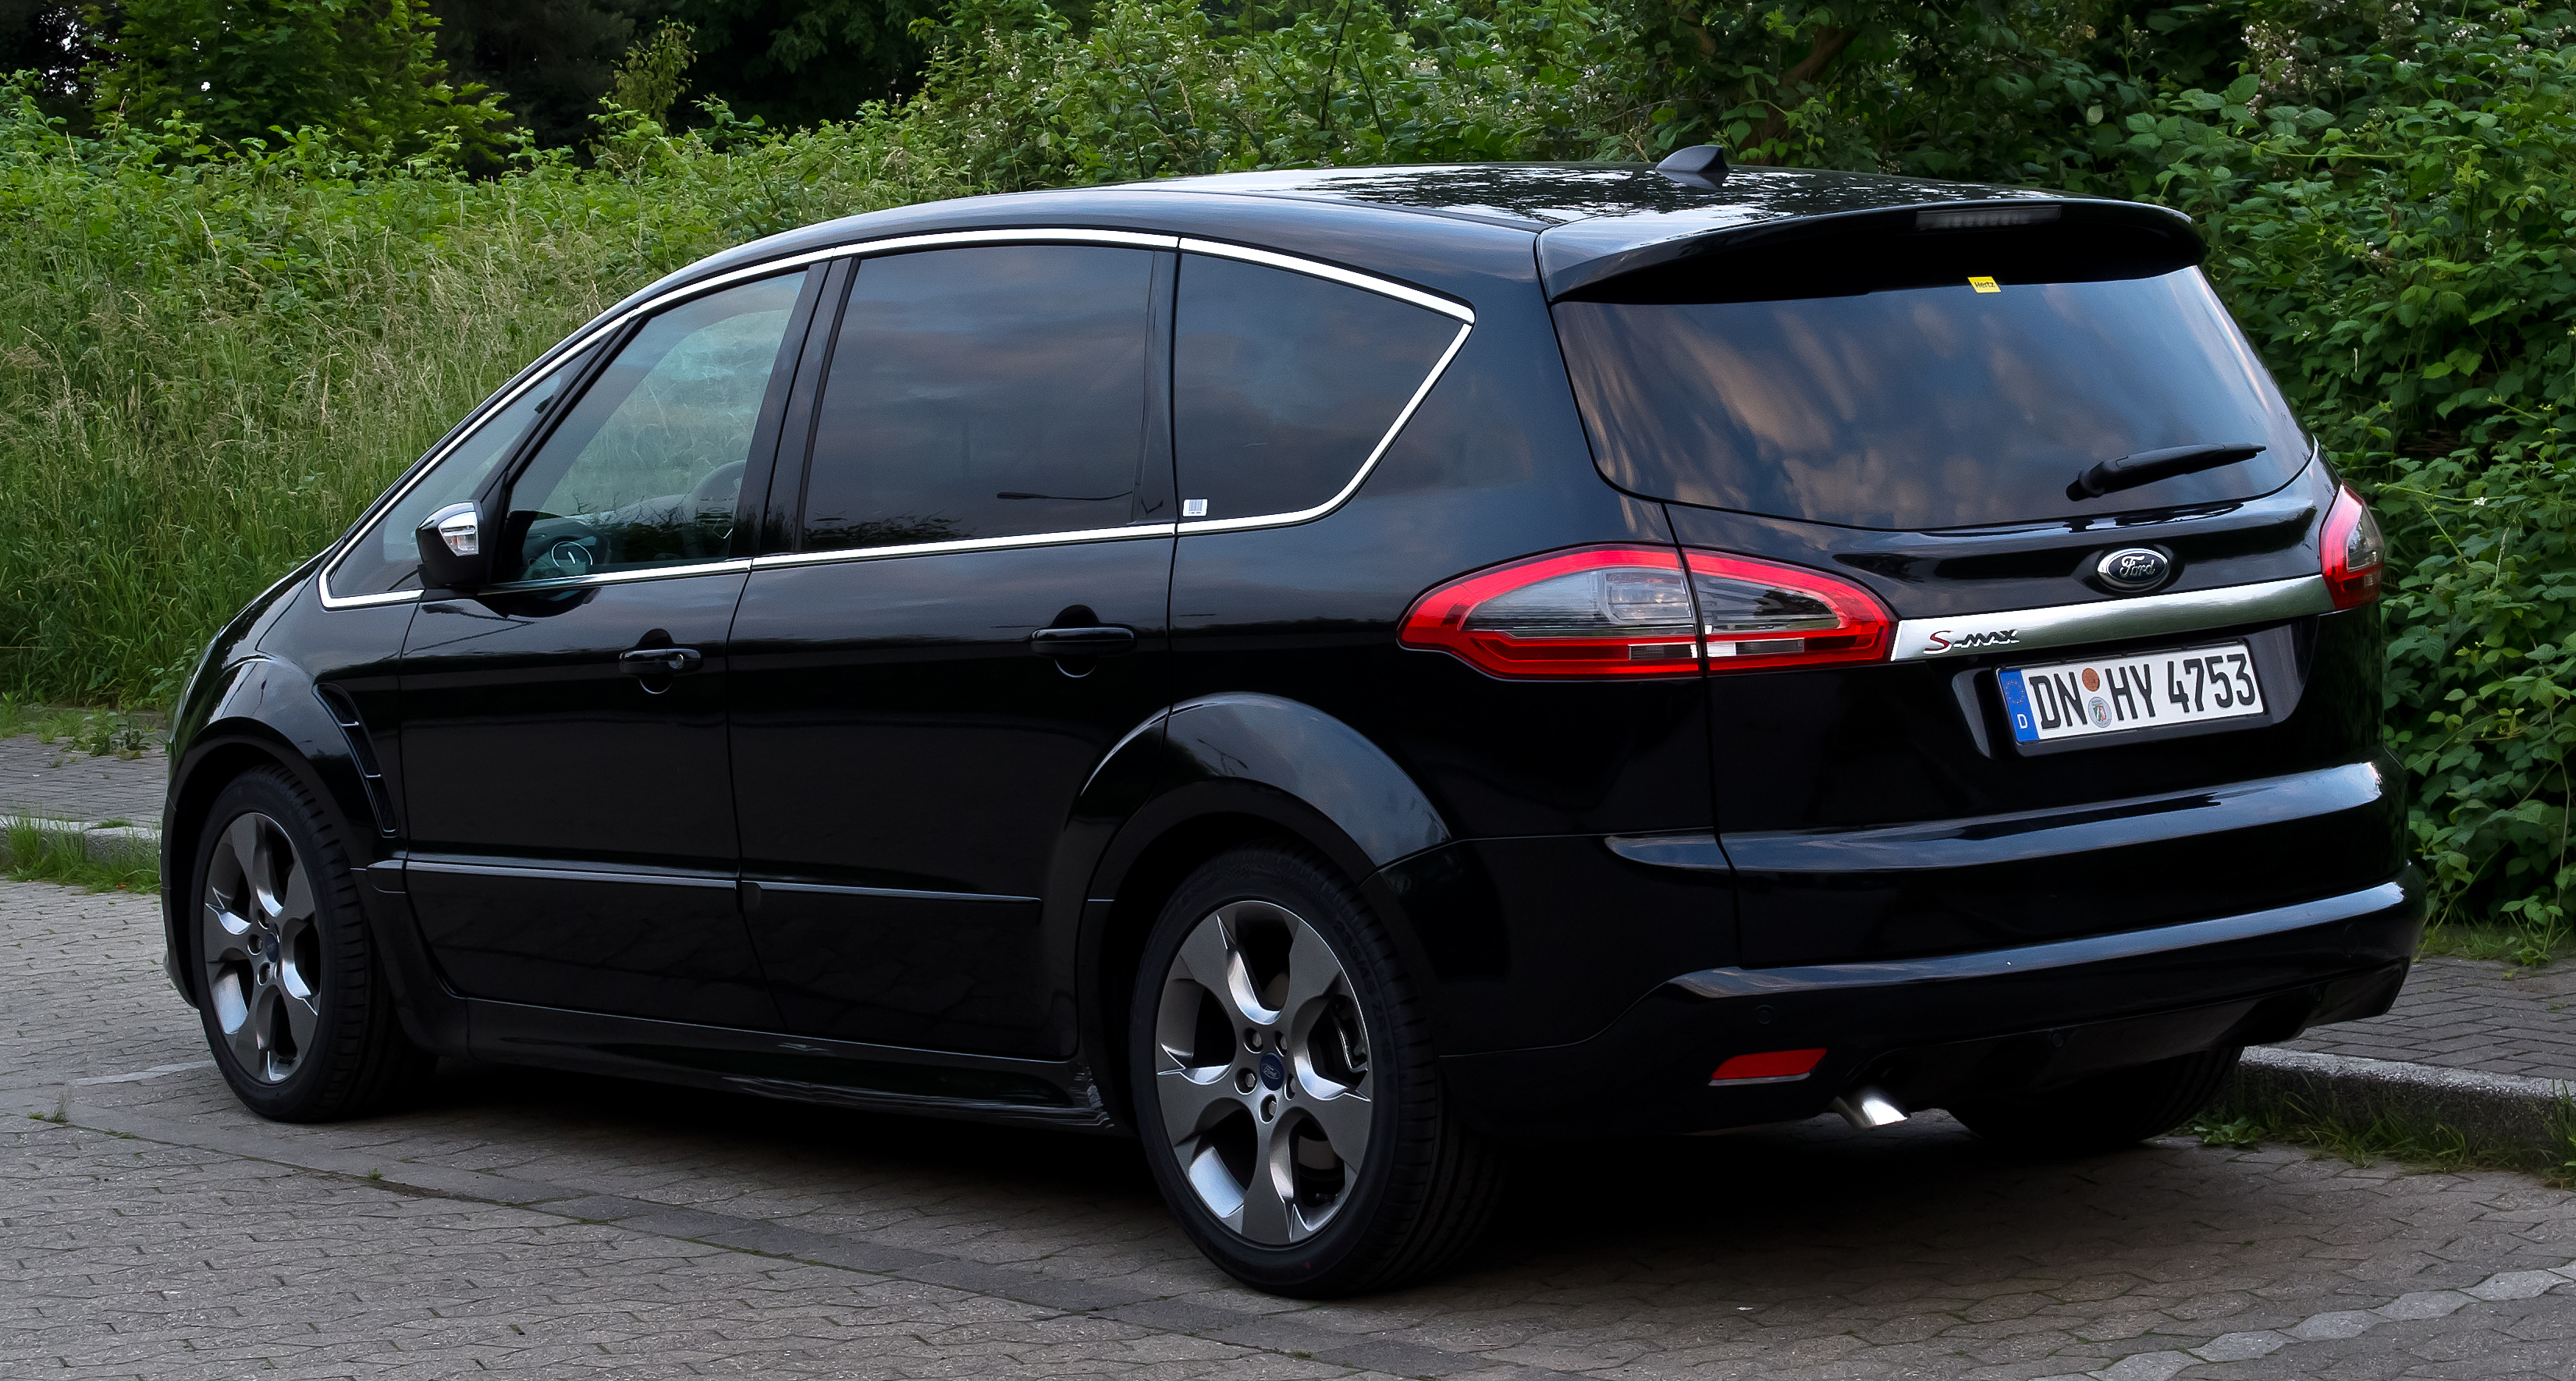 datei ford s max titanium s facelift heckansicht 18 juni 2012 wikipedia. Black Bedroom Furniture Sets. Home Design Ideas